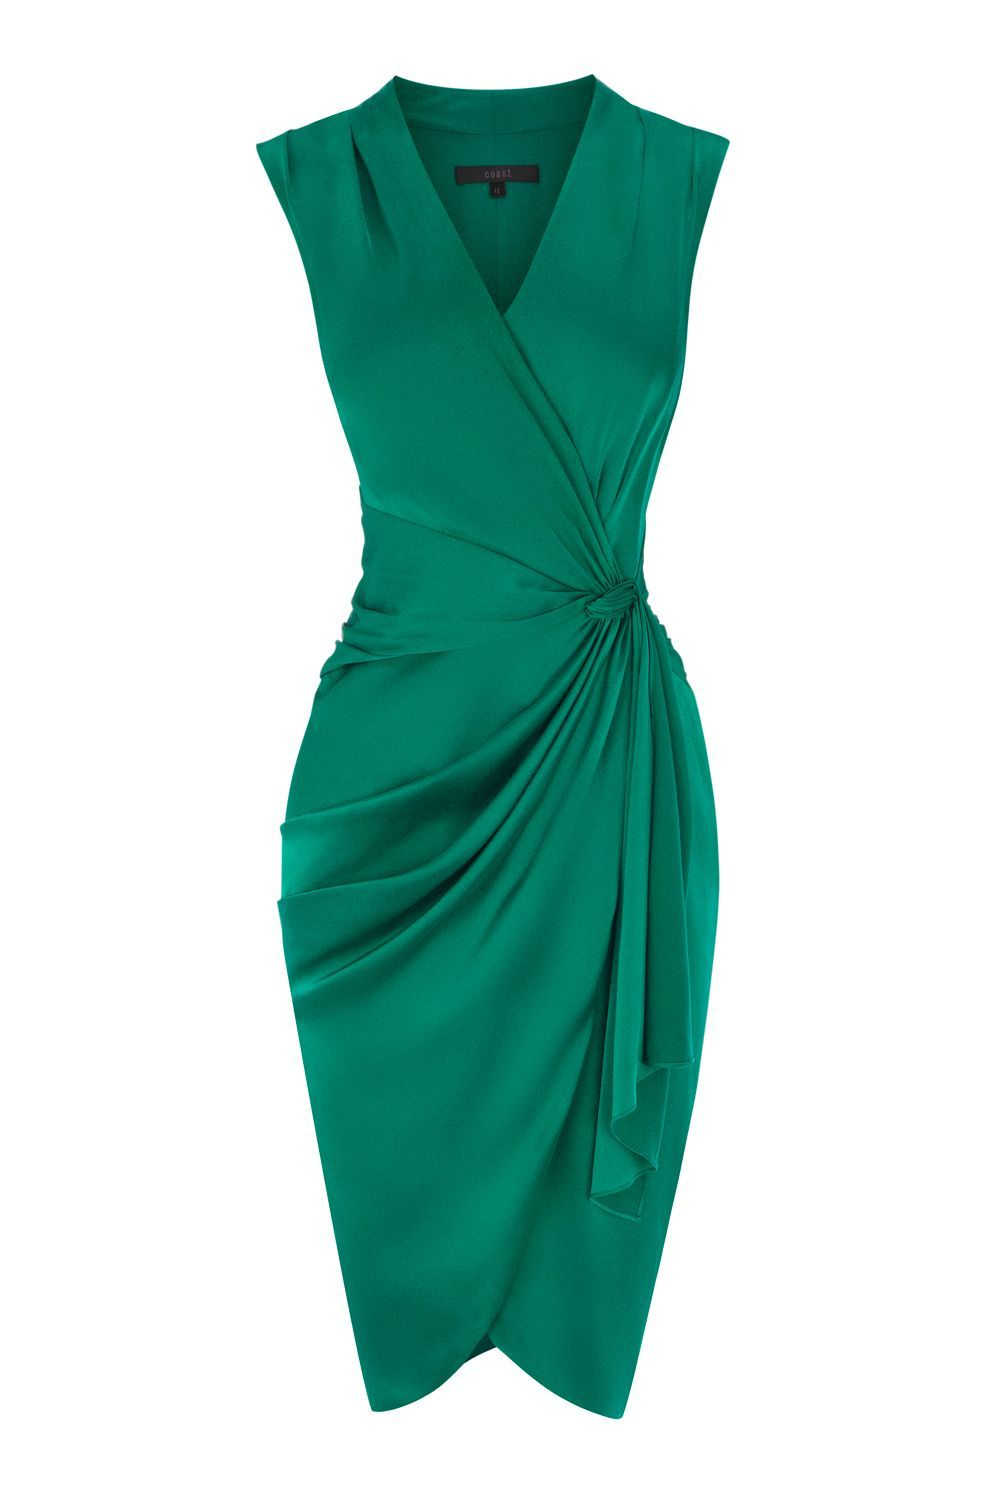 Women\'s Green Lavinia Gathered-Satin Dress | Emeralds, Satin dresses ...